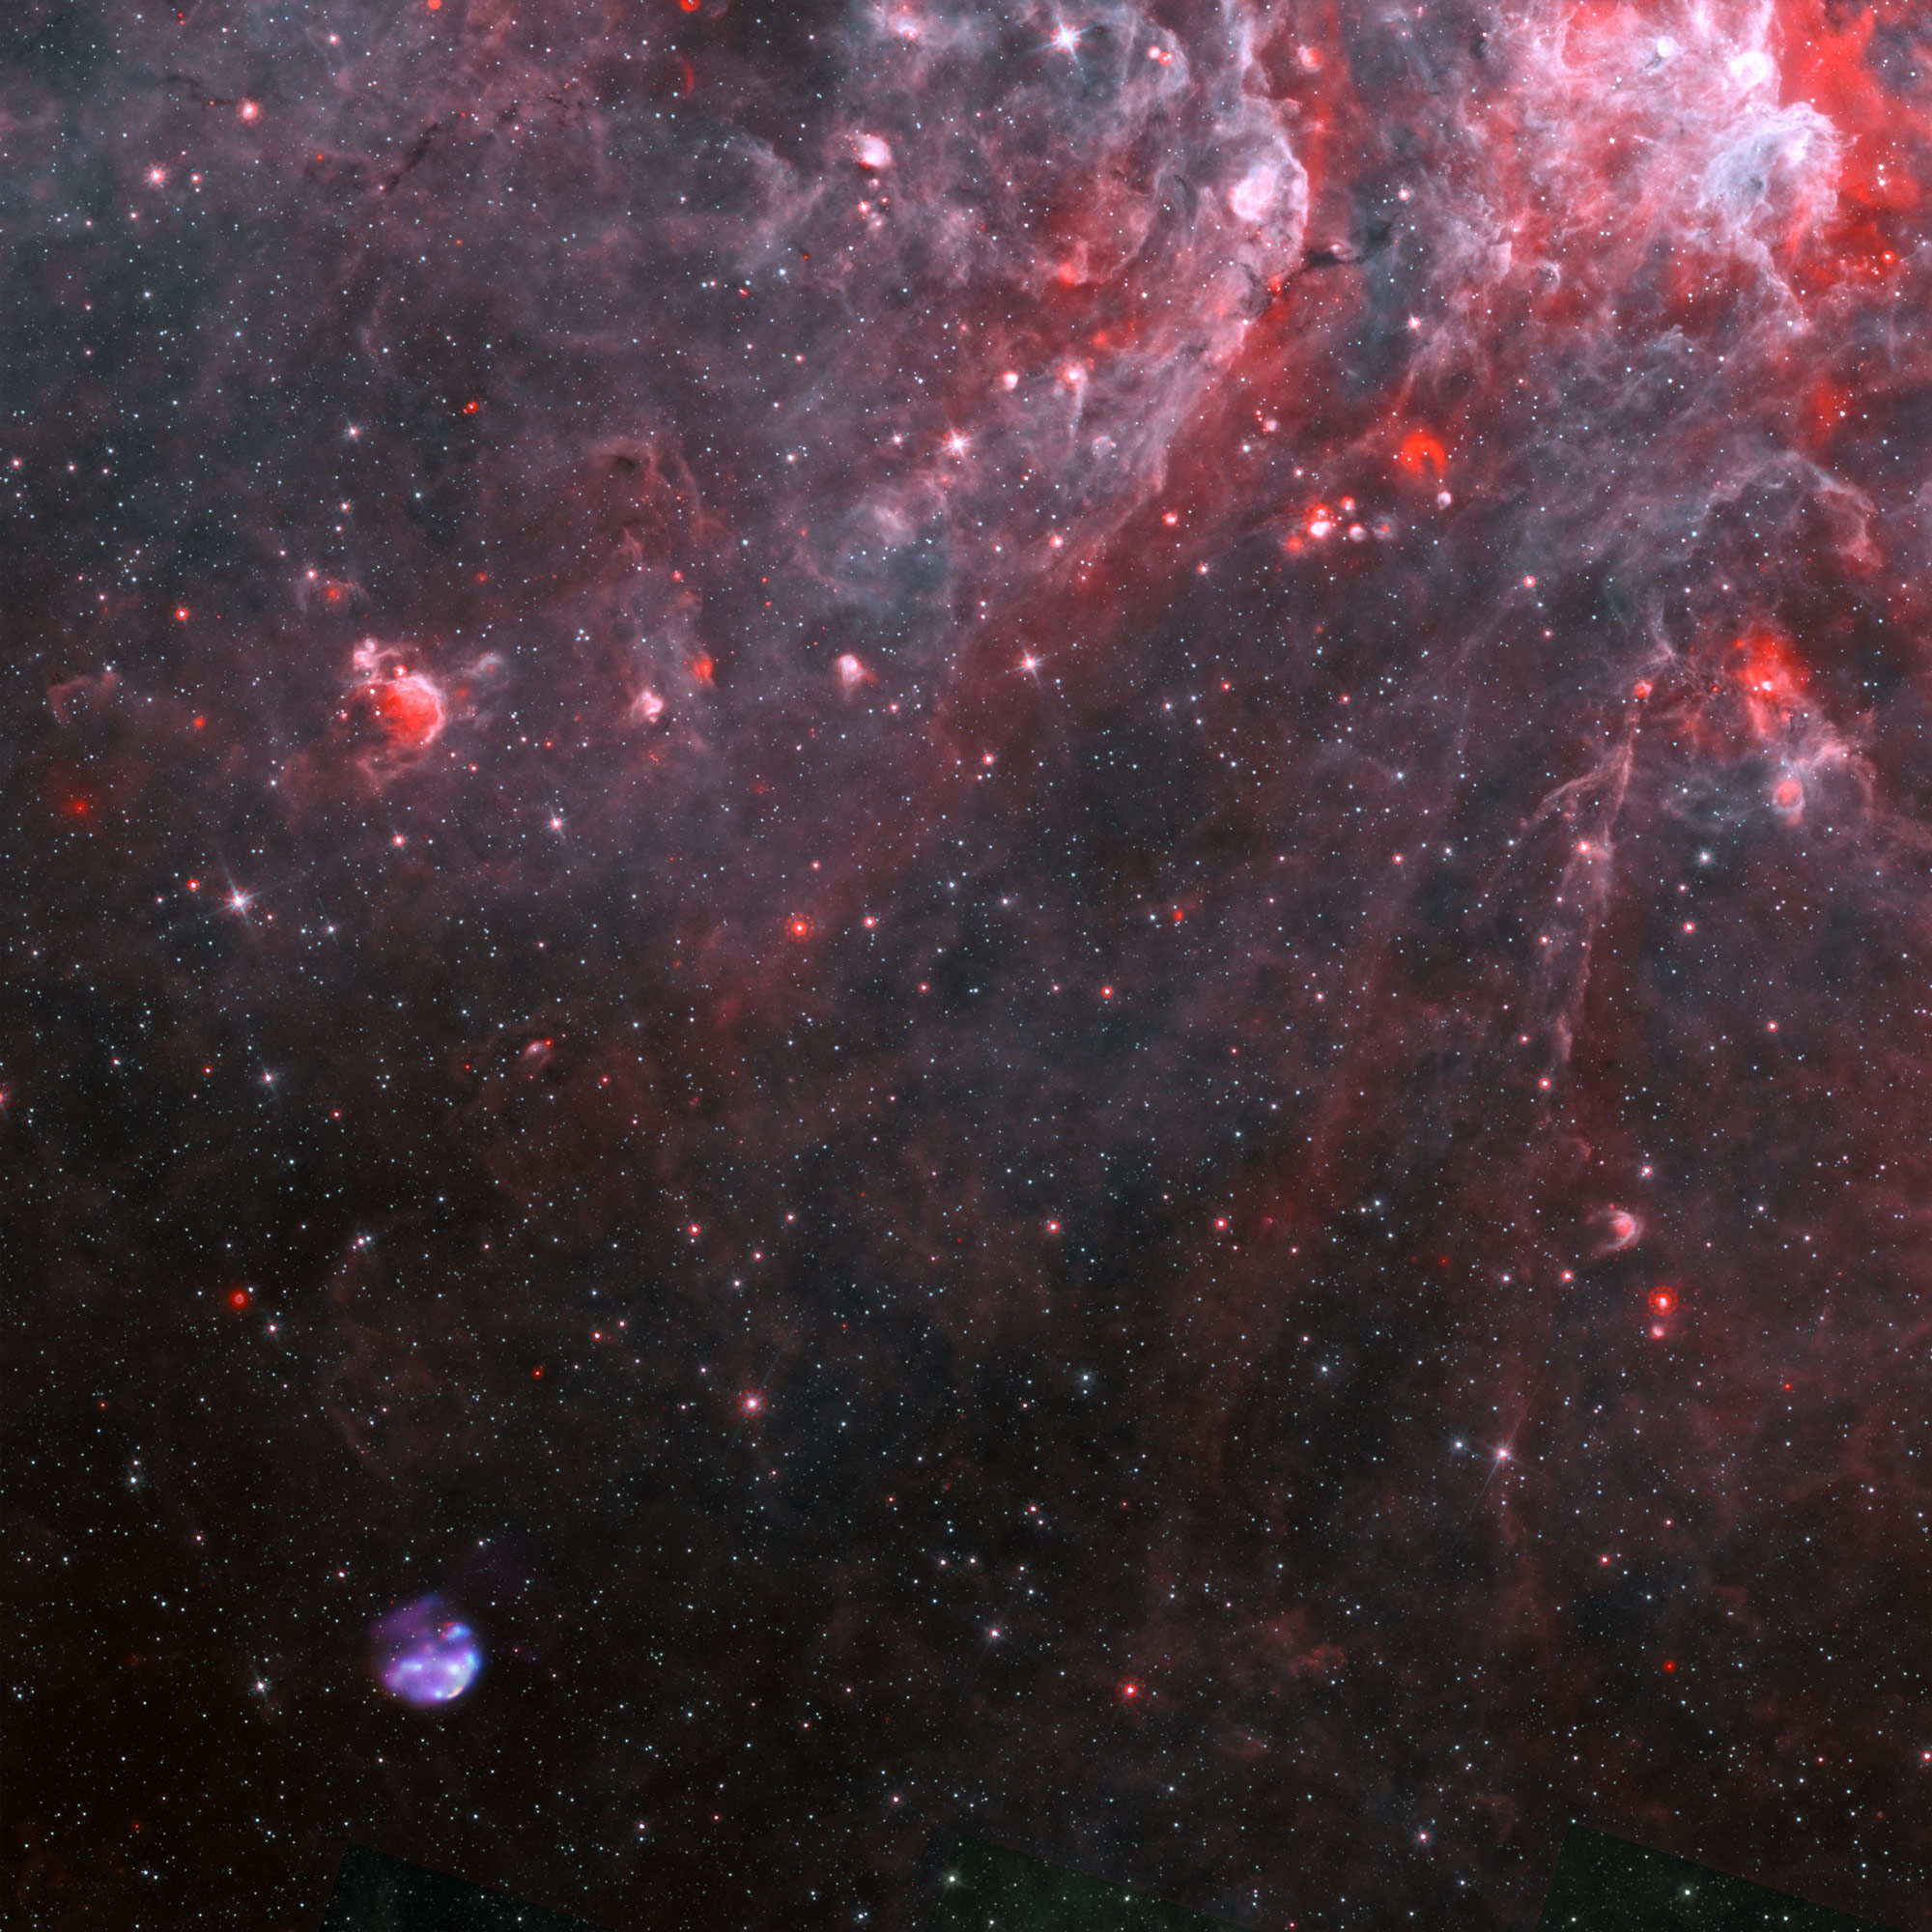 NASA's Swift Discovers a Young Galactic Supernova Remnant